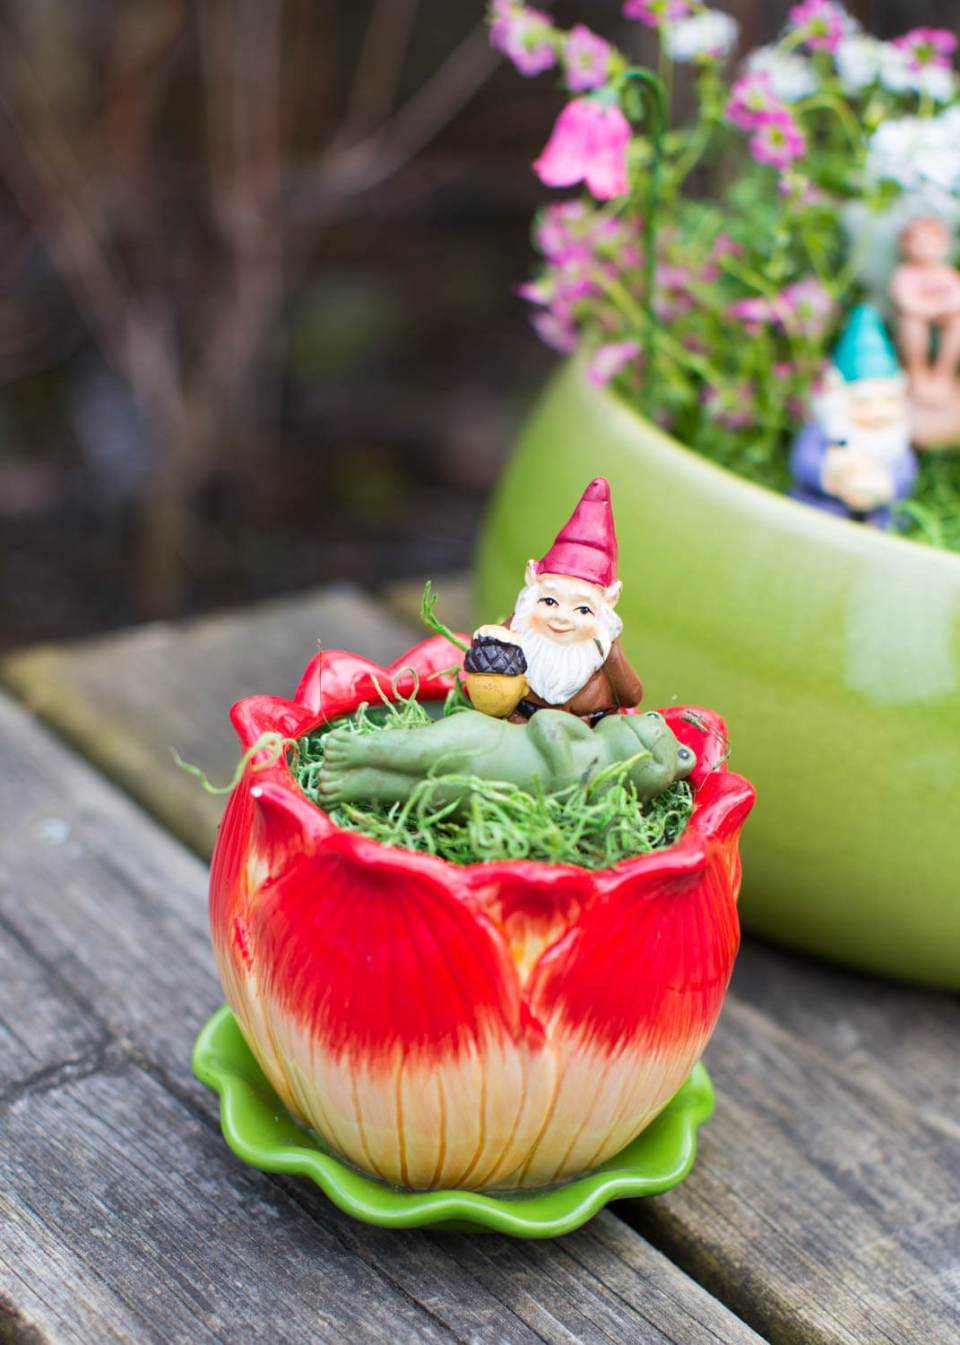 Fairy Tea Cup Garden Ornament | fairy garden accessories | miniture fairy garden ideas inspiration | homemade fairy garden decorations